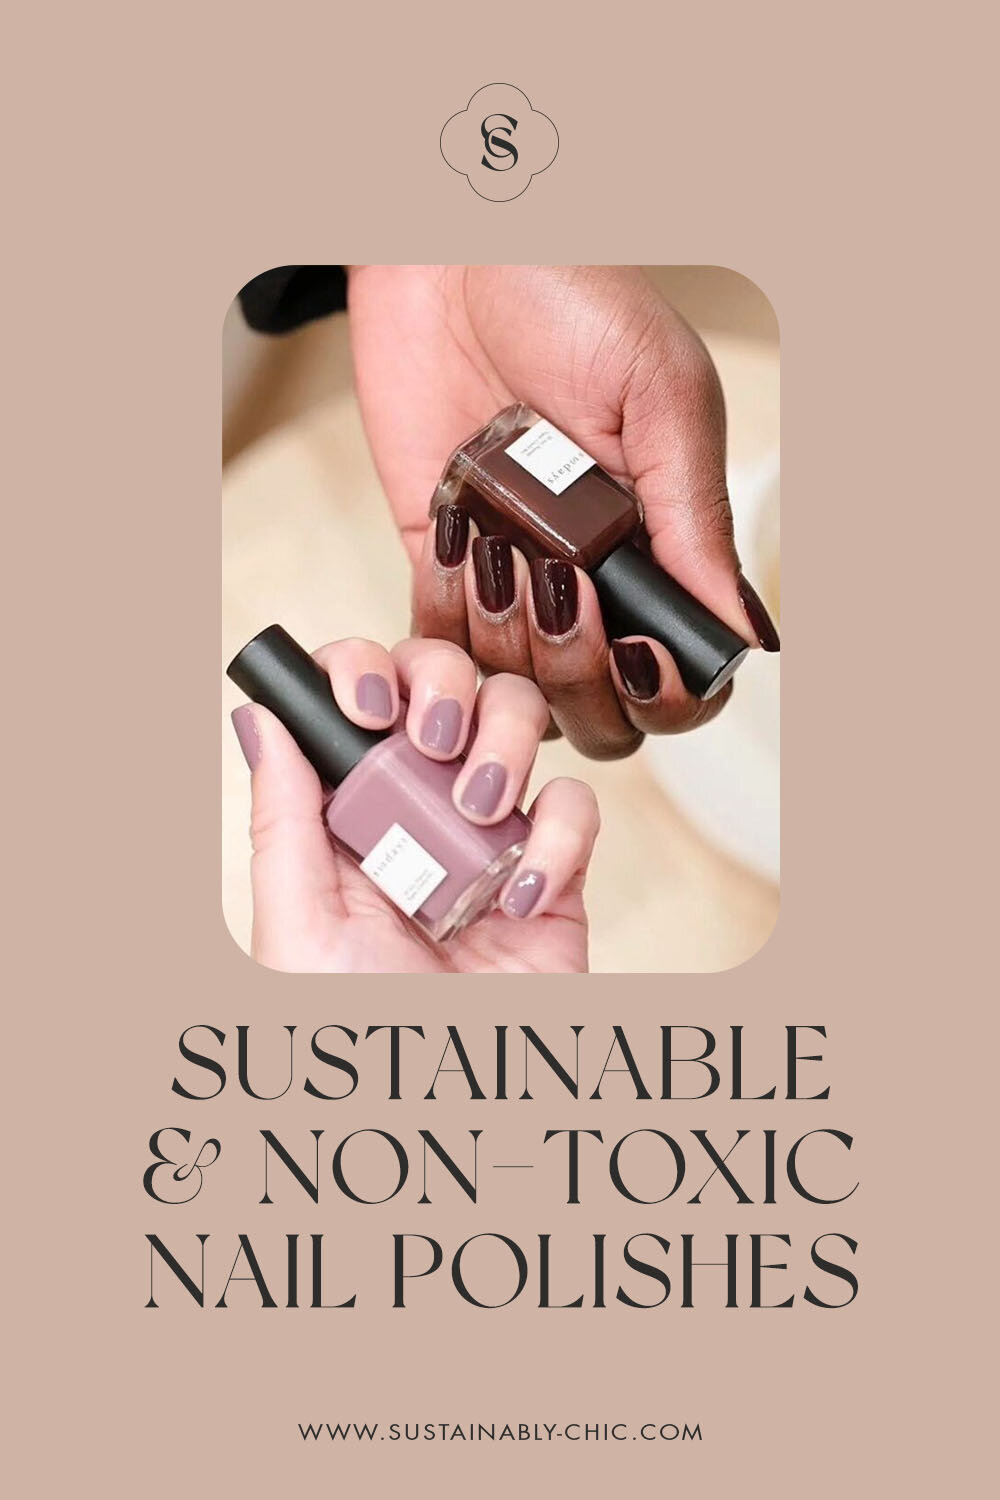 Sustainably Chic | Sustainable Fashion & Beauty Blog | The Best Sustainable & Non-Toxic Nail Polishes.jpg